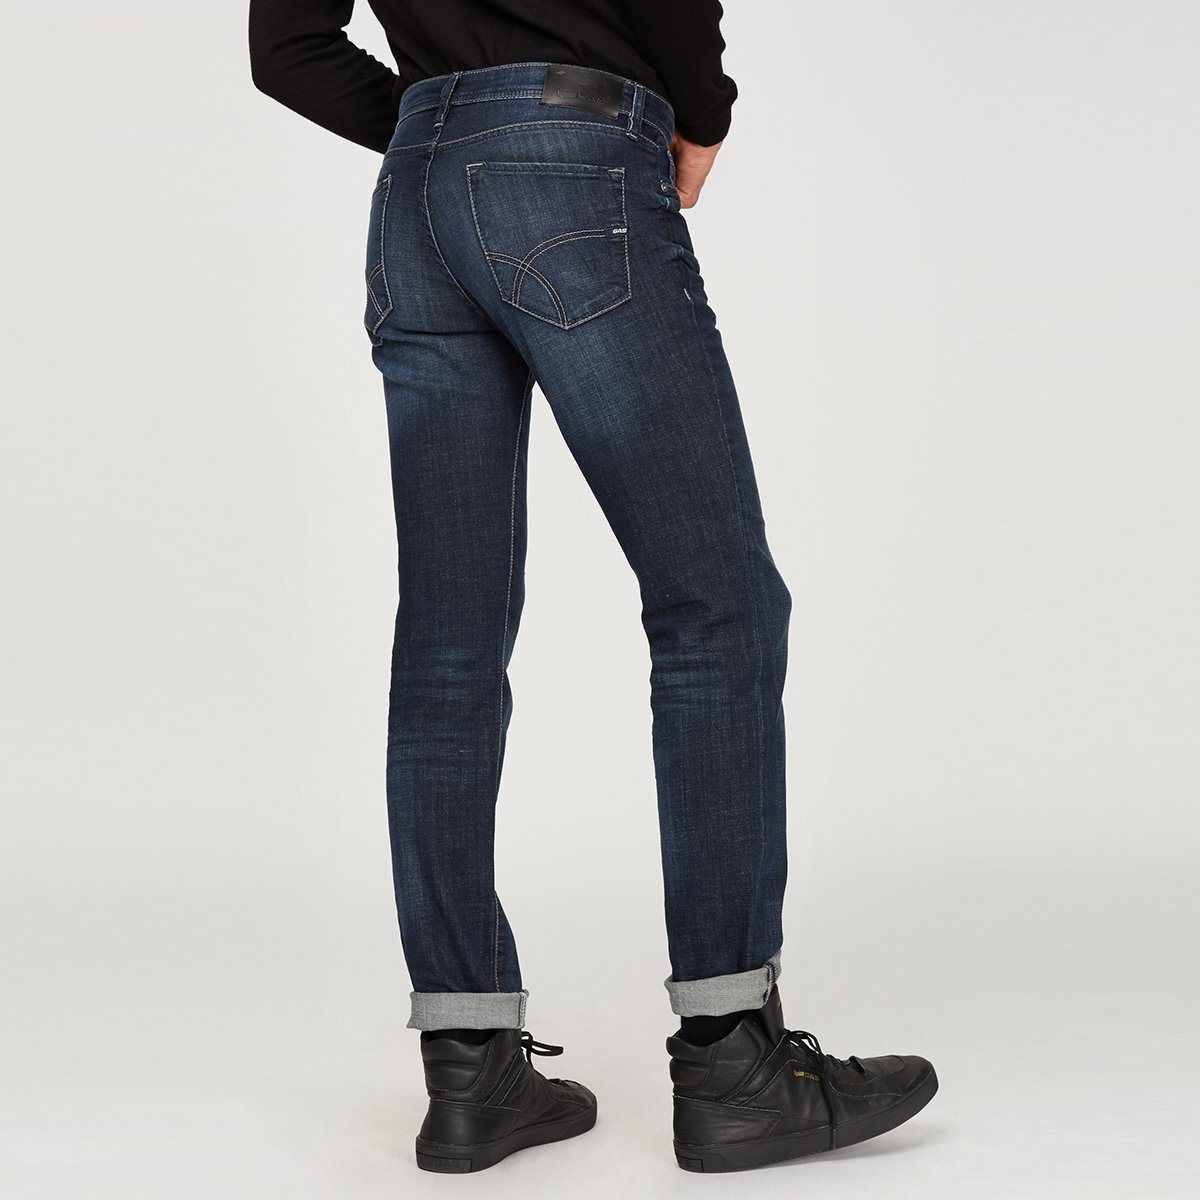 Exclusive morris wn77 'straight fit' stretch jeans